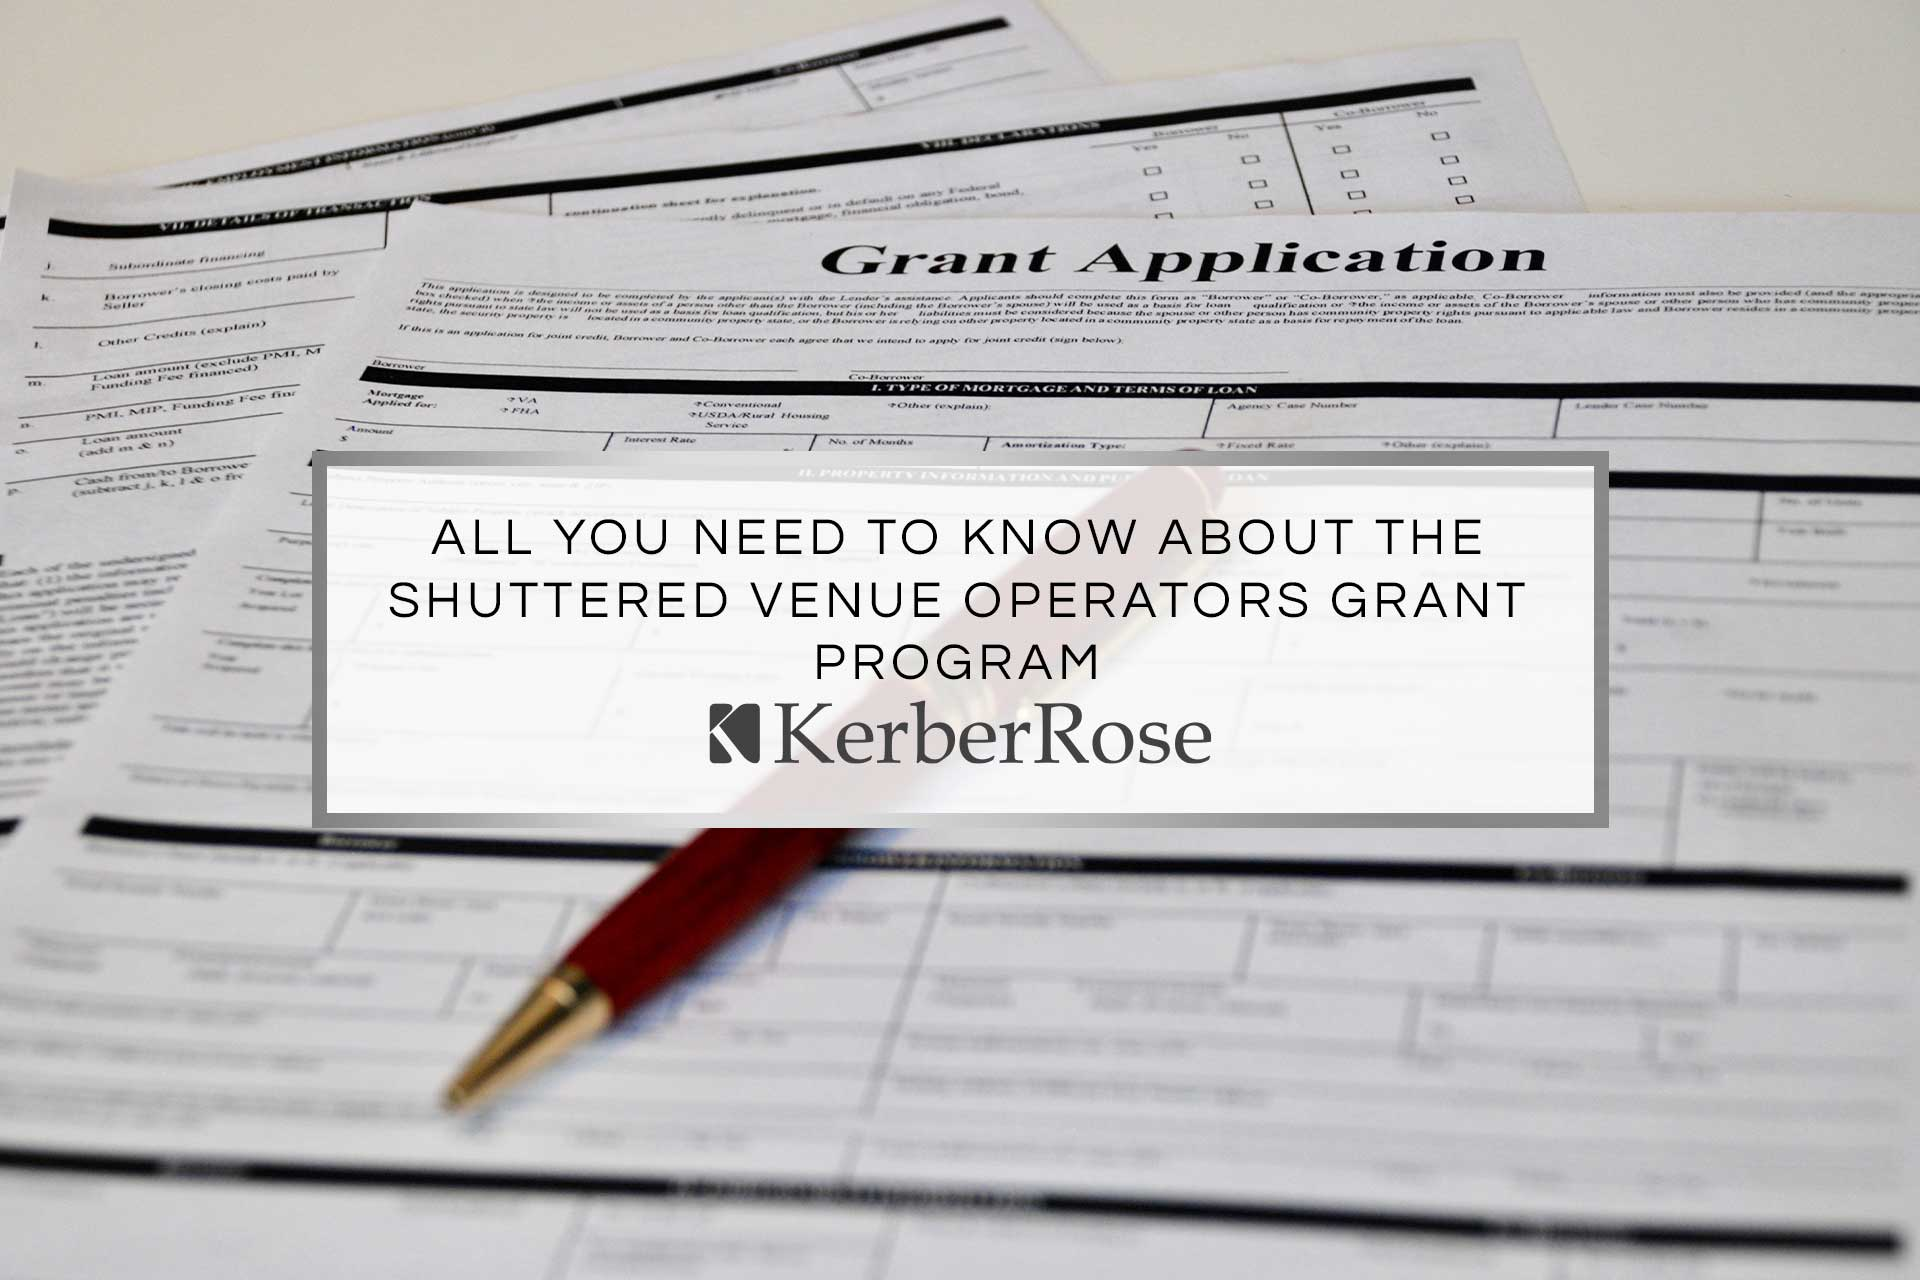 All You Need to Know About the Shuttered Venue Operators Grant Program